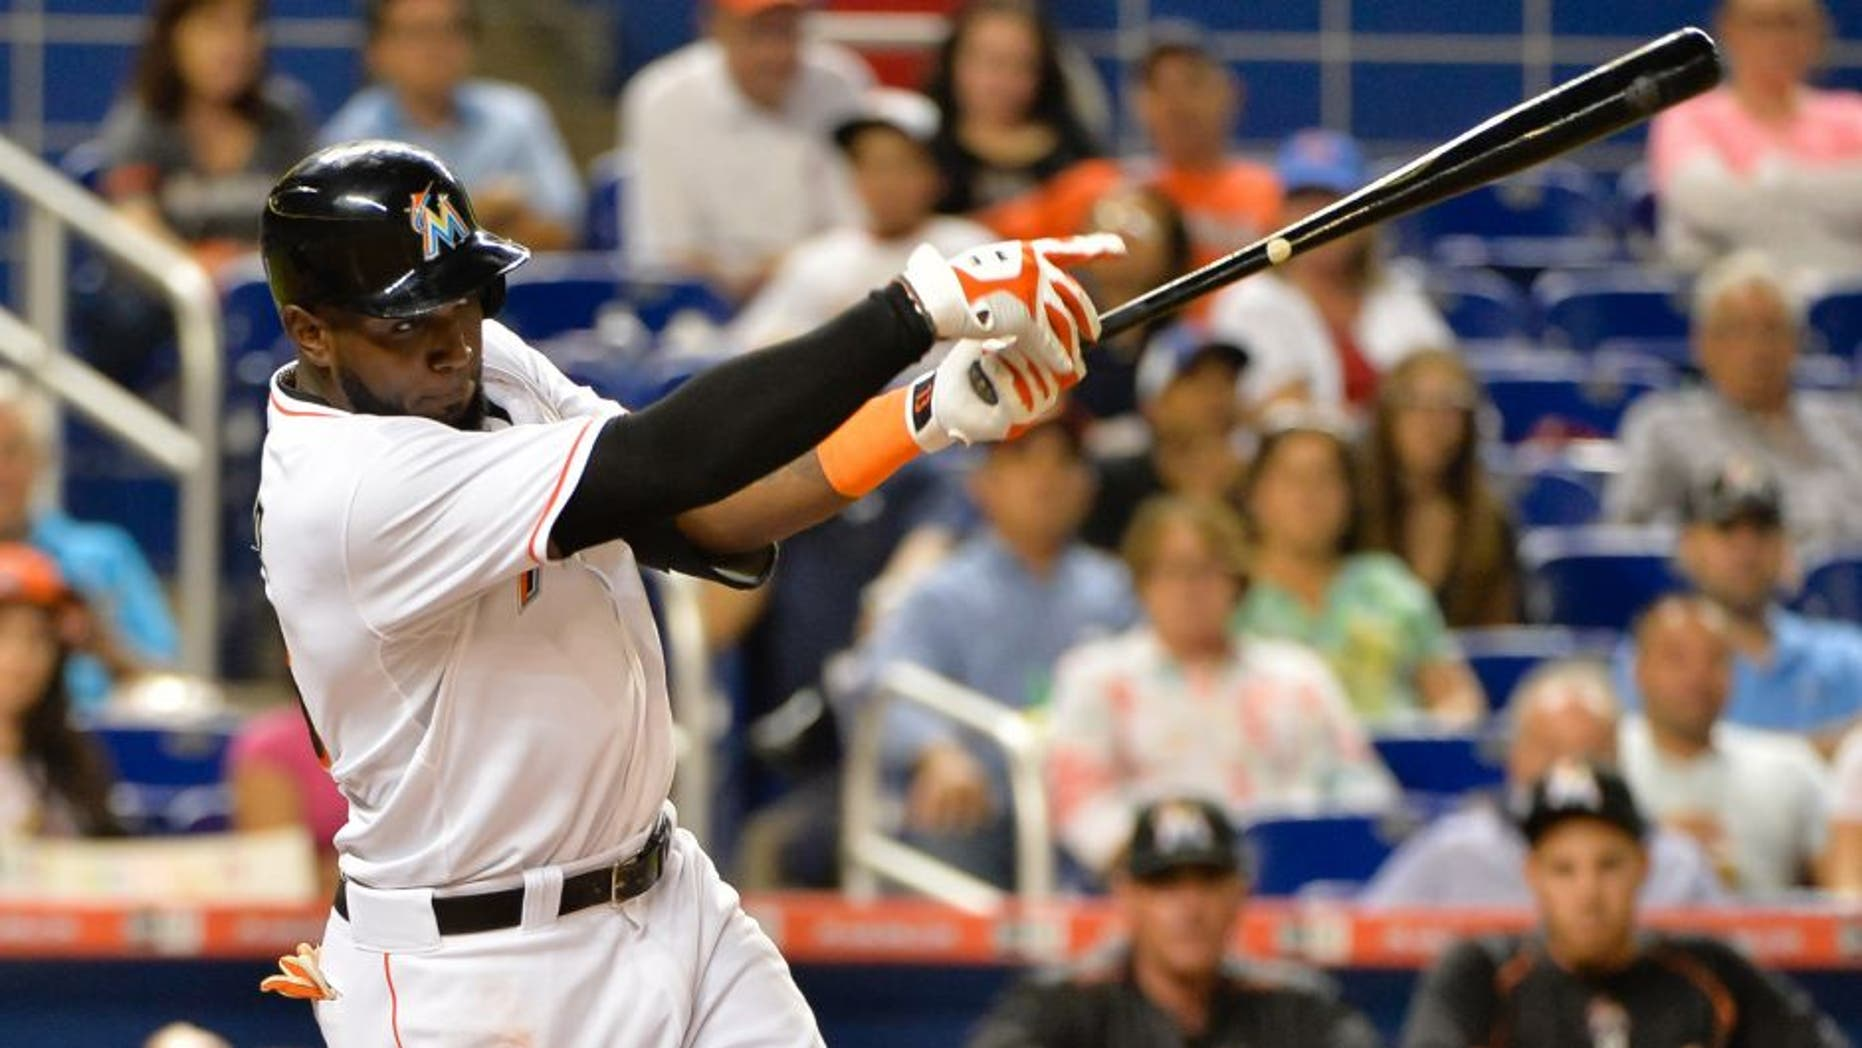 Jun 2, 2015; Miami, FL, USA; Miami Marlins center fielder Marcell Ozuna (13) connects for a base hit during the second inning against the Chicago Cubs at Marlins Park. Mandatory Credit: Steve Mitchell-USA TODAY Sports